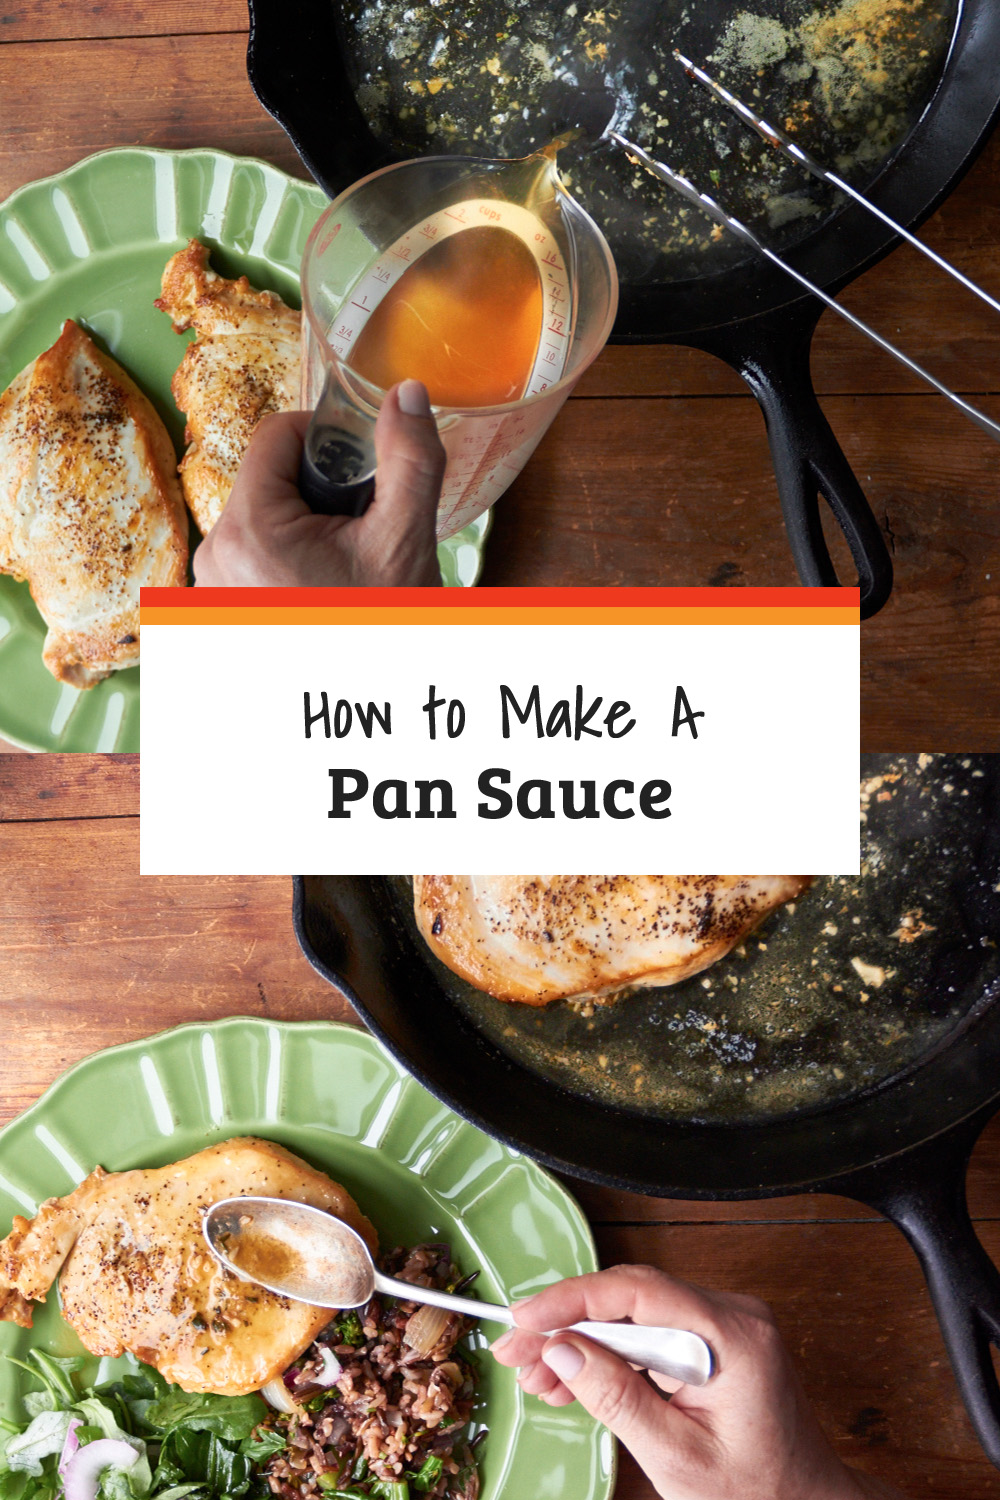 How to Make a Pan Sauce: This is a simple blueprint for a key, adaptable pan sauce recipe. Say goodbye to another boring chicken dinner.